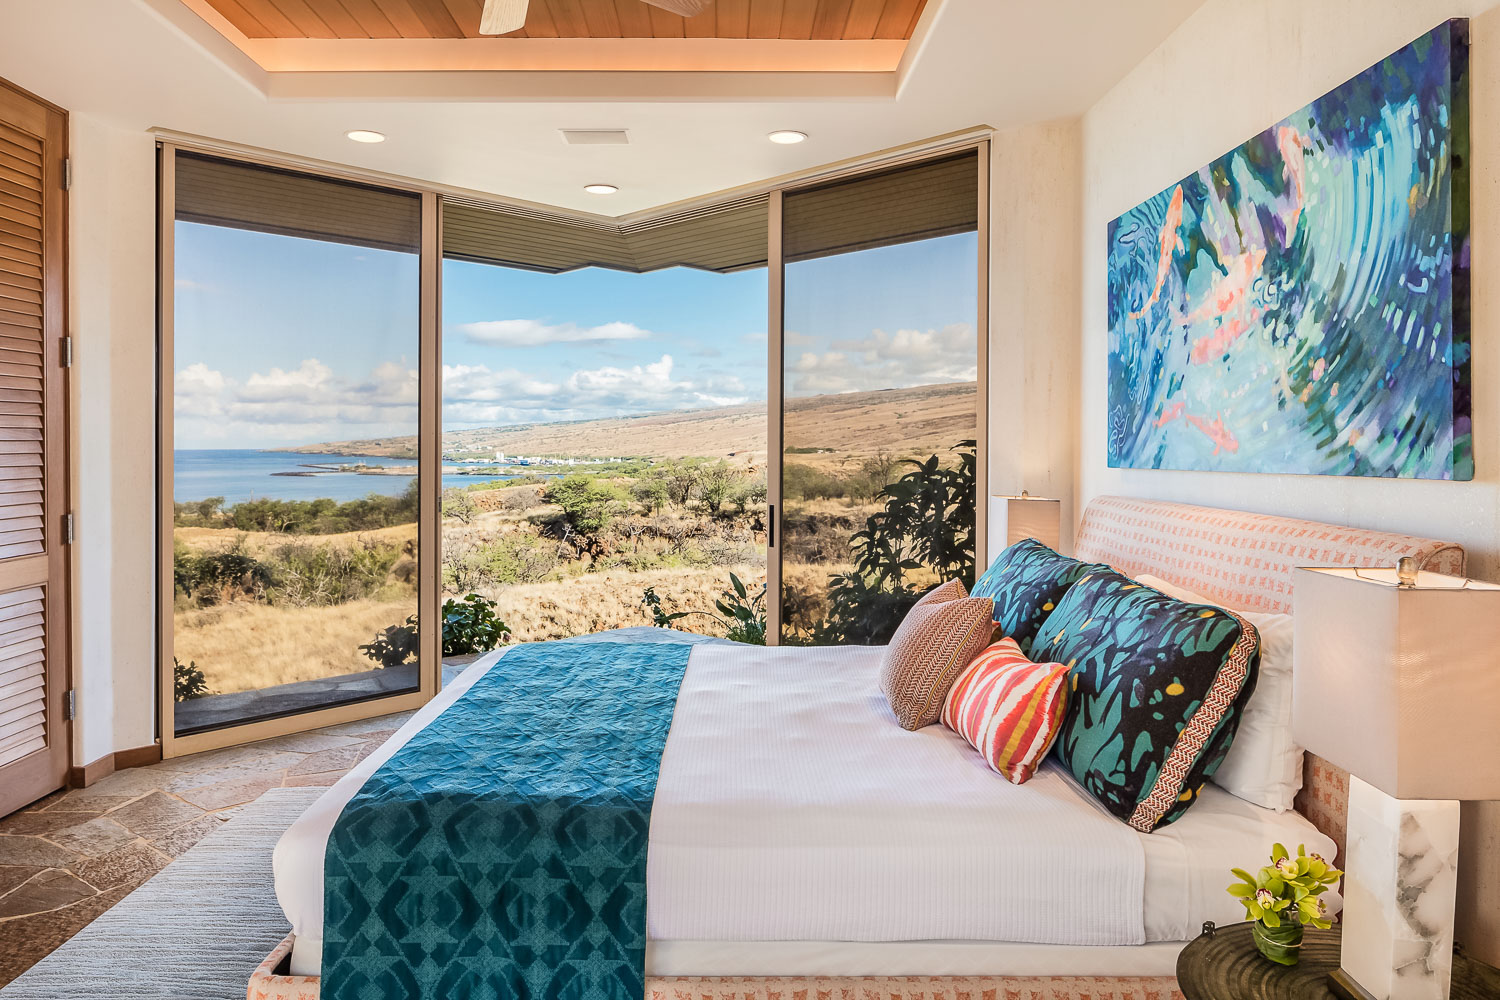 Apartment Fairway North 5 Bedroom 5 Bath Mauna Kea Resort  Big Island  Hawaii photo 20362439